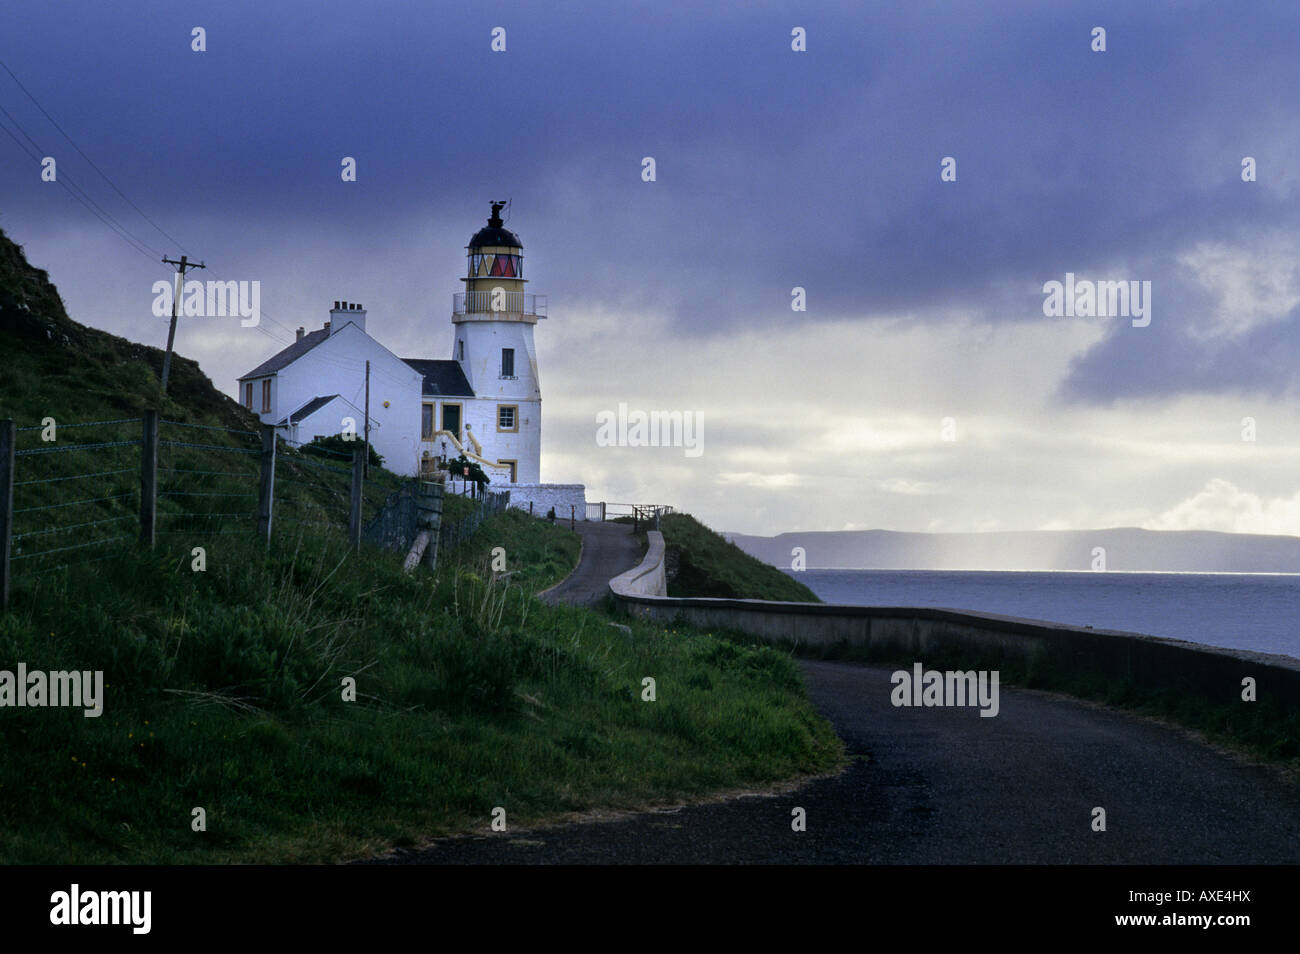 Holborn Head Lighthouse, Scrabster, Caithness, Scotland, on a stormy day - Stock Image